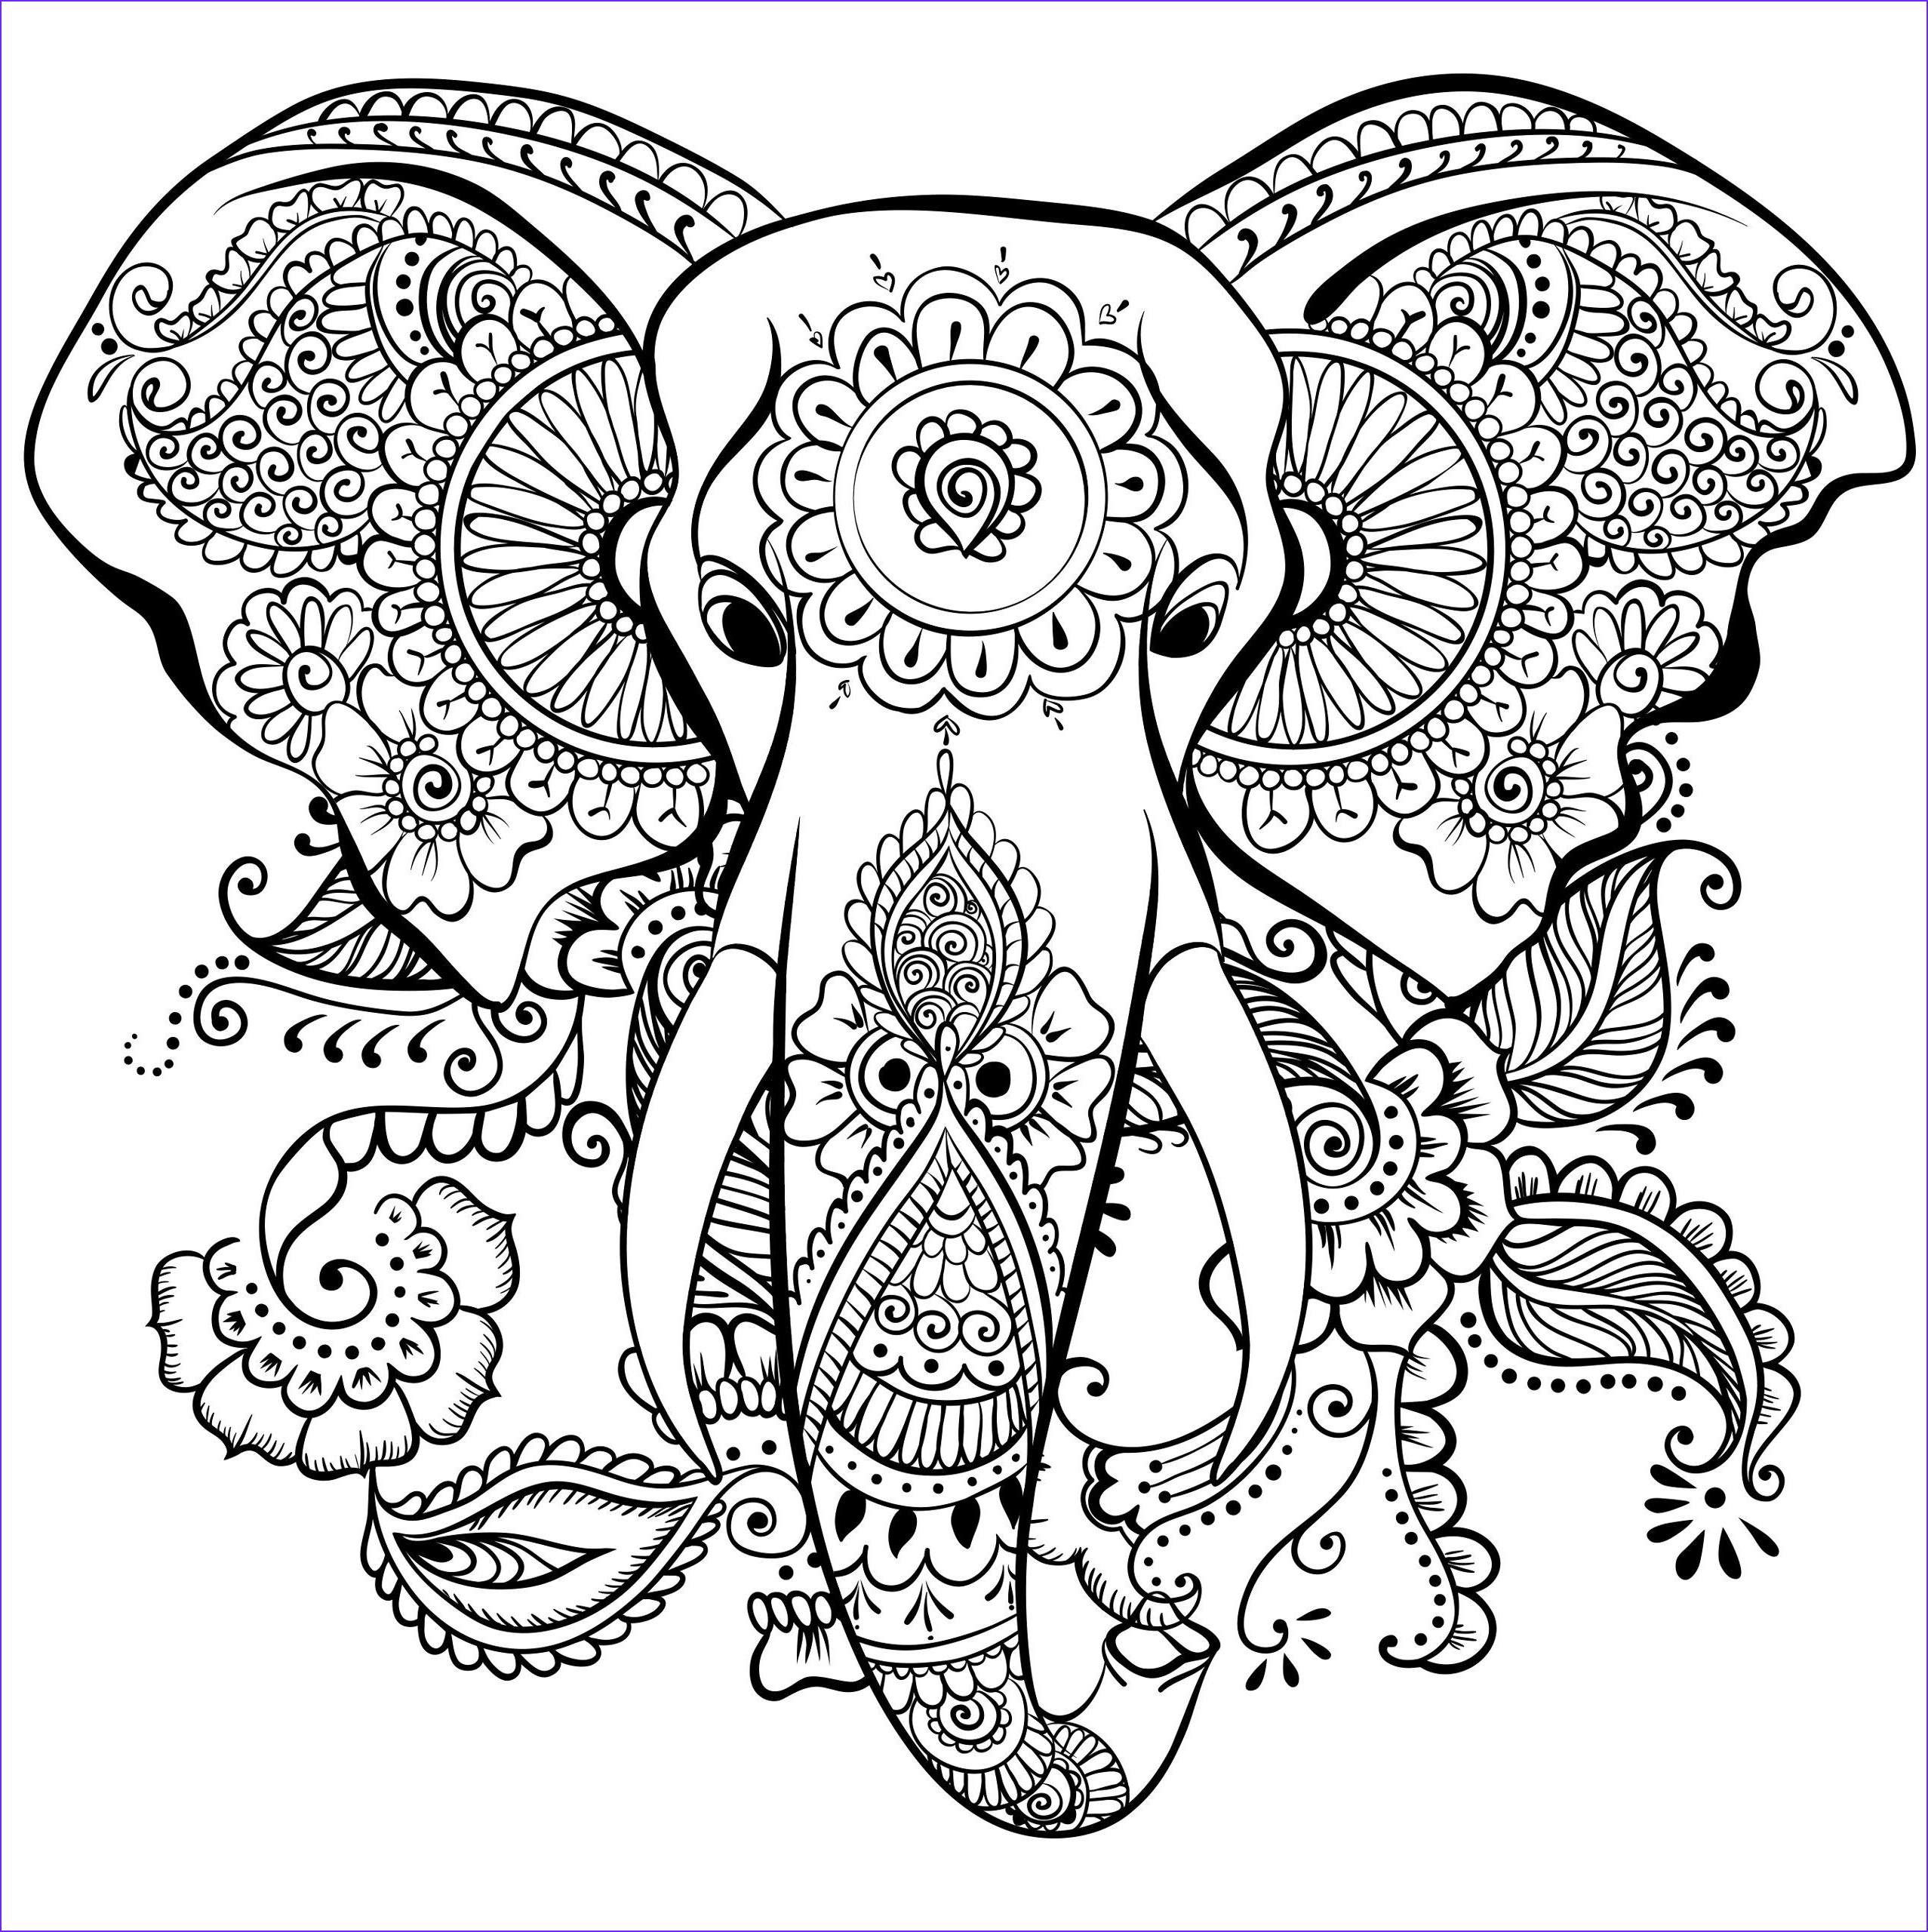 Stress Free Coloring Book Inspirational Collection Wild at Heart Adult Coloring Book 31 Stress Relieving